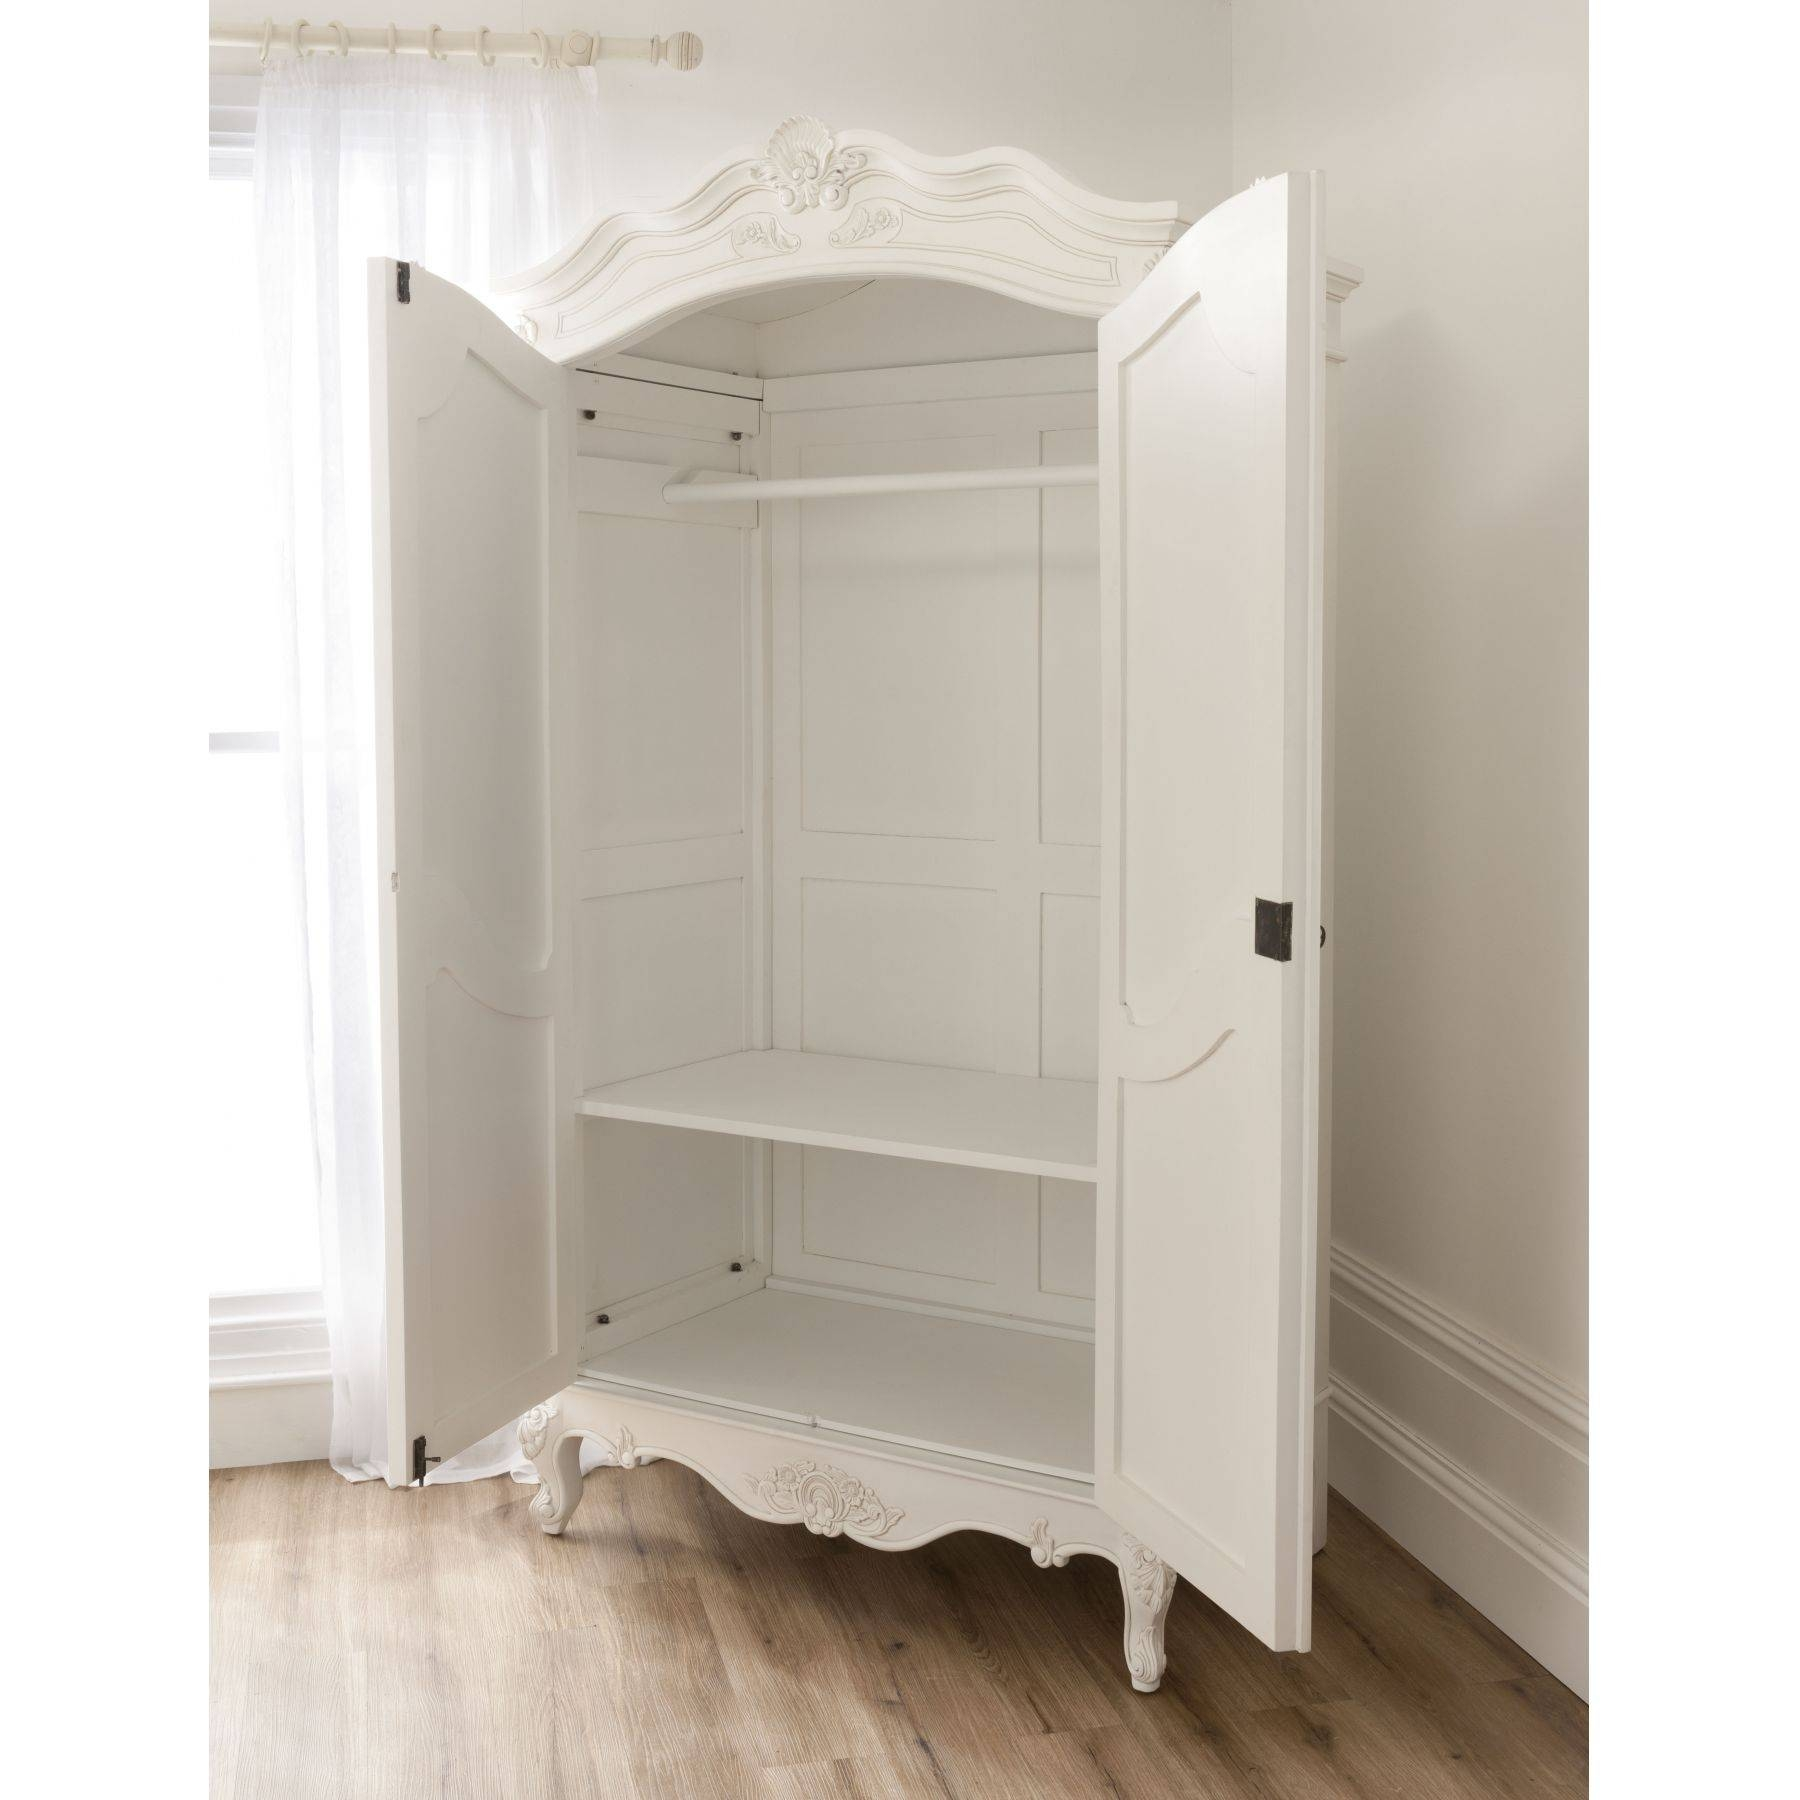 Baroque Antique French Wardrobe Is Available Online From within White French Wardrobes (Image 3 of 15)